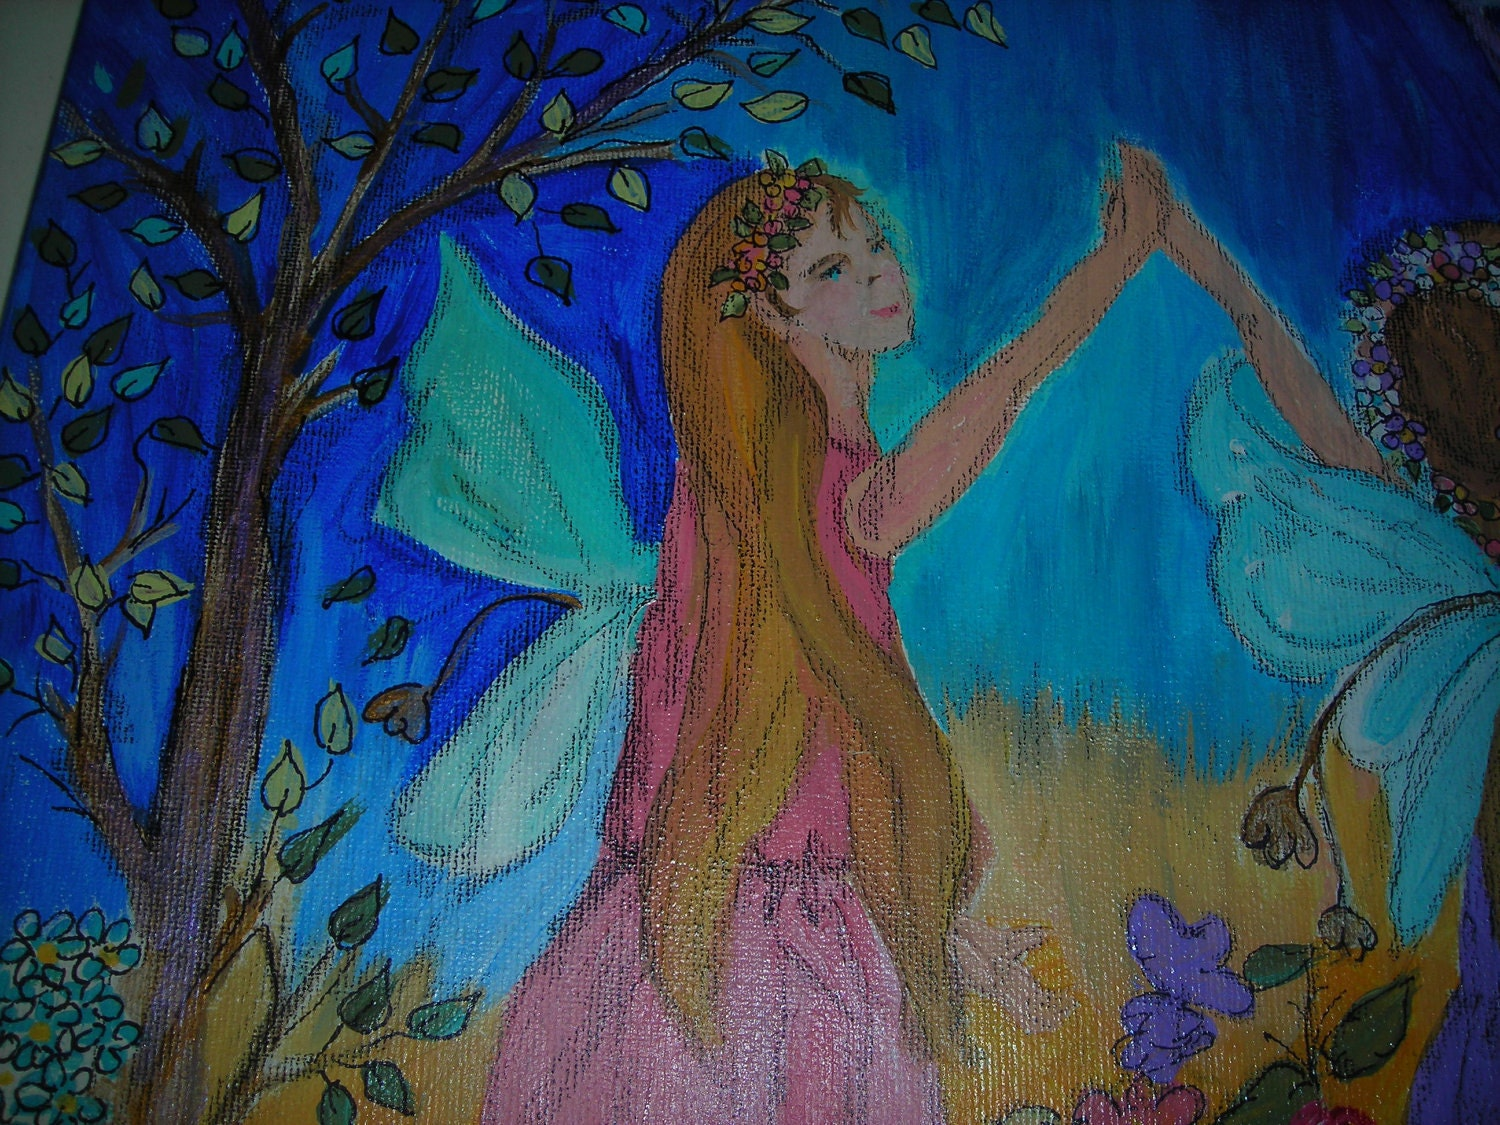 Original Acrylic Painting 20x16 Children's Painting Kids wall Art of Dance of the Fairies